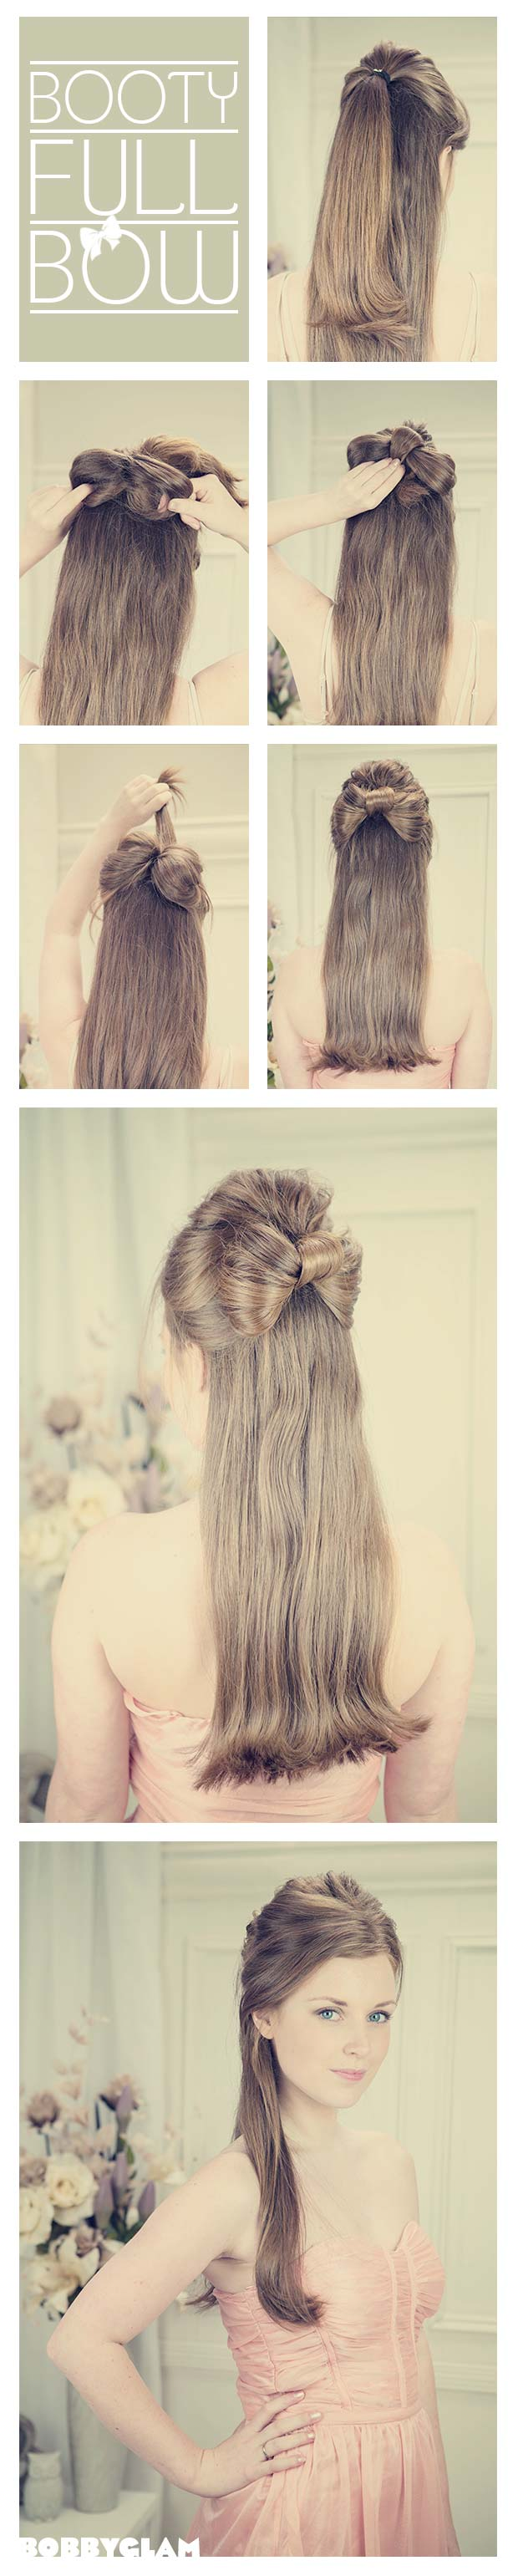 Half-up-half-down-hairstyle-tutorials-9